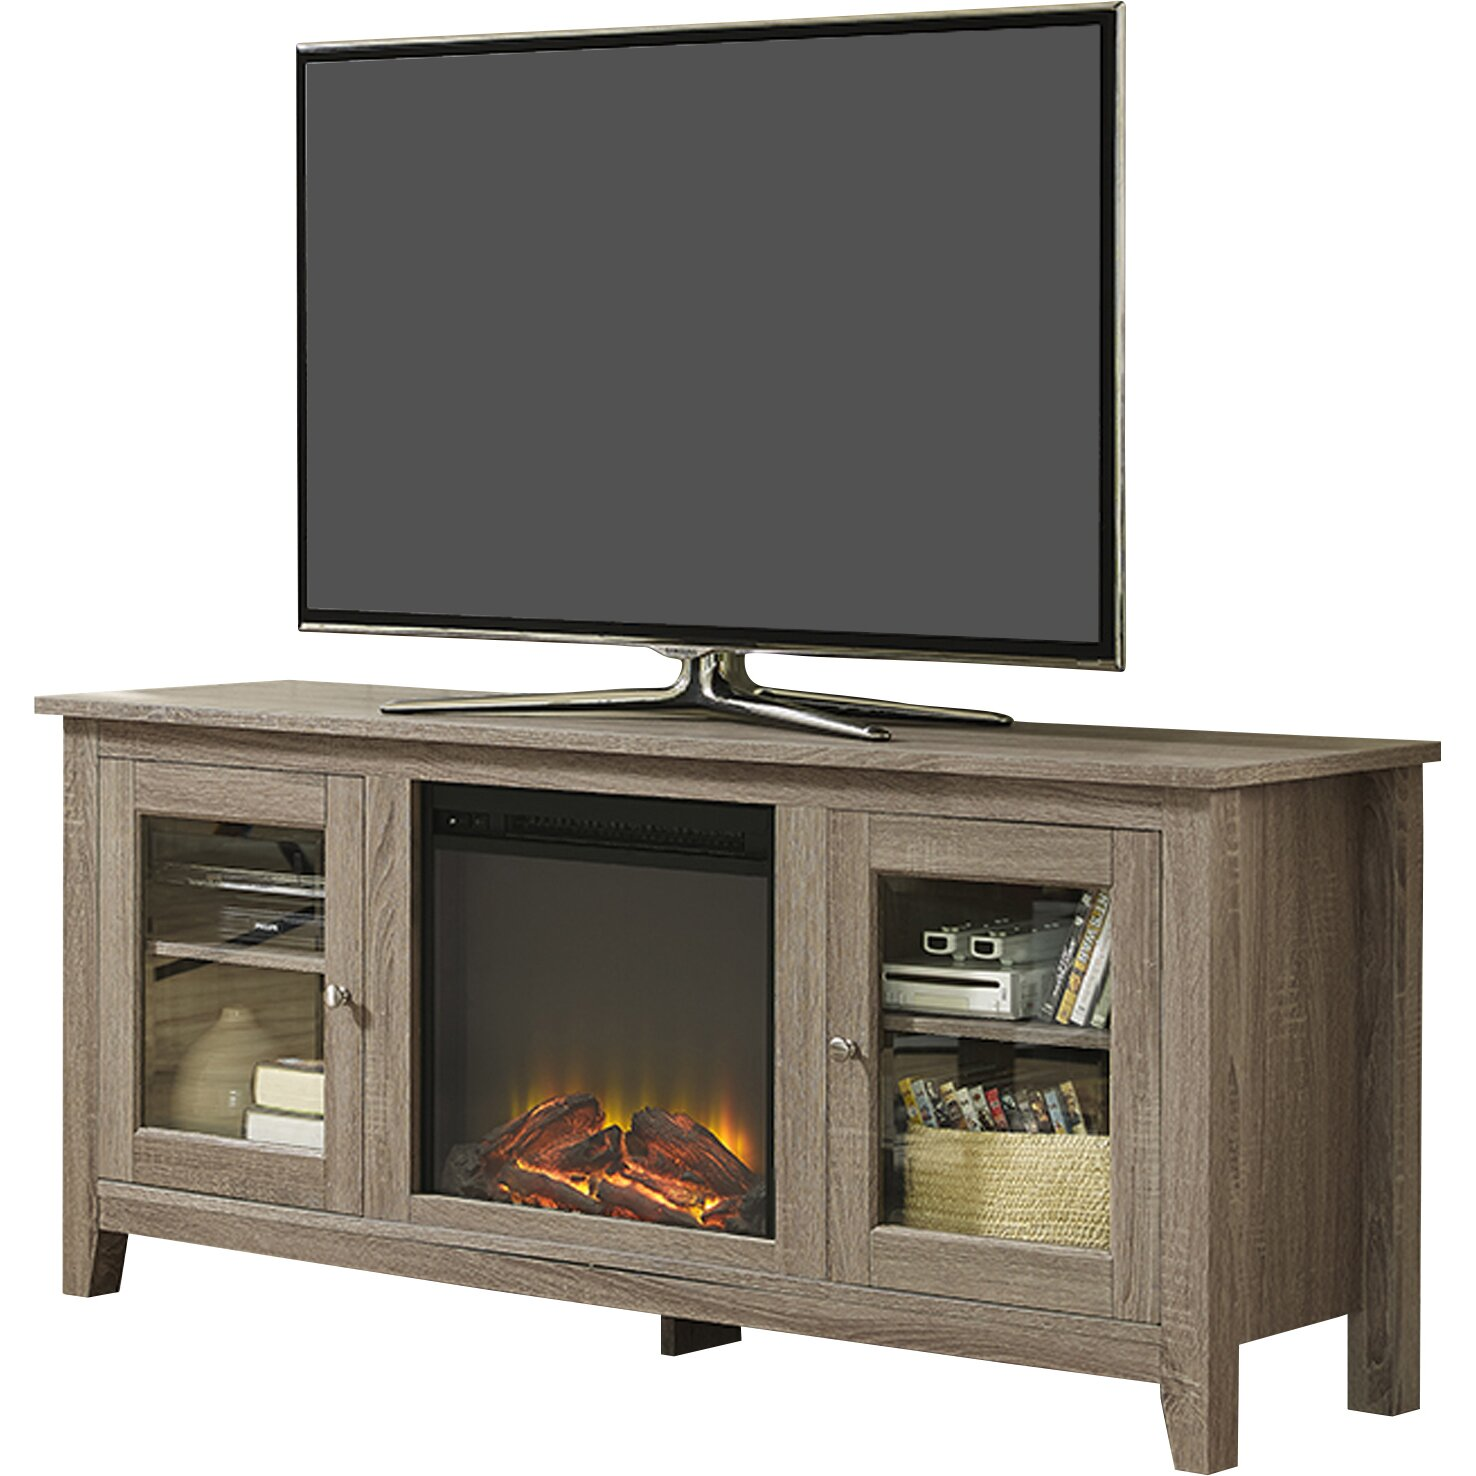 Brayden Studio Andy Tv Stand With Electric Fireplace Reviews Wayfair